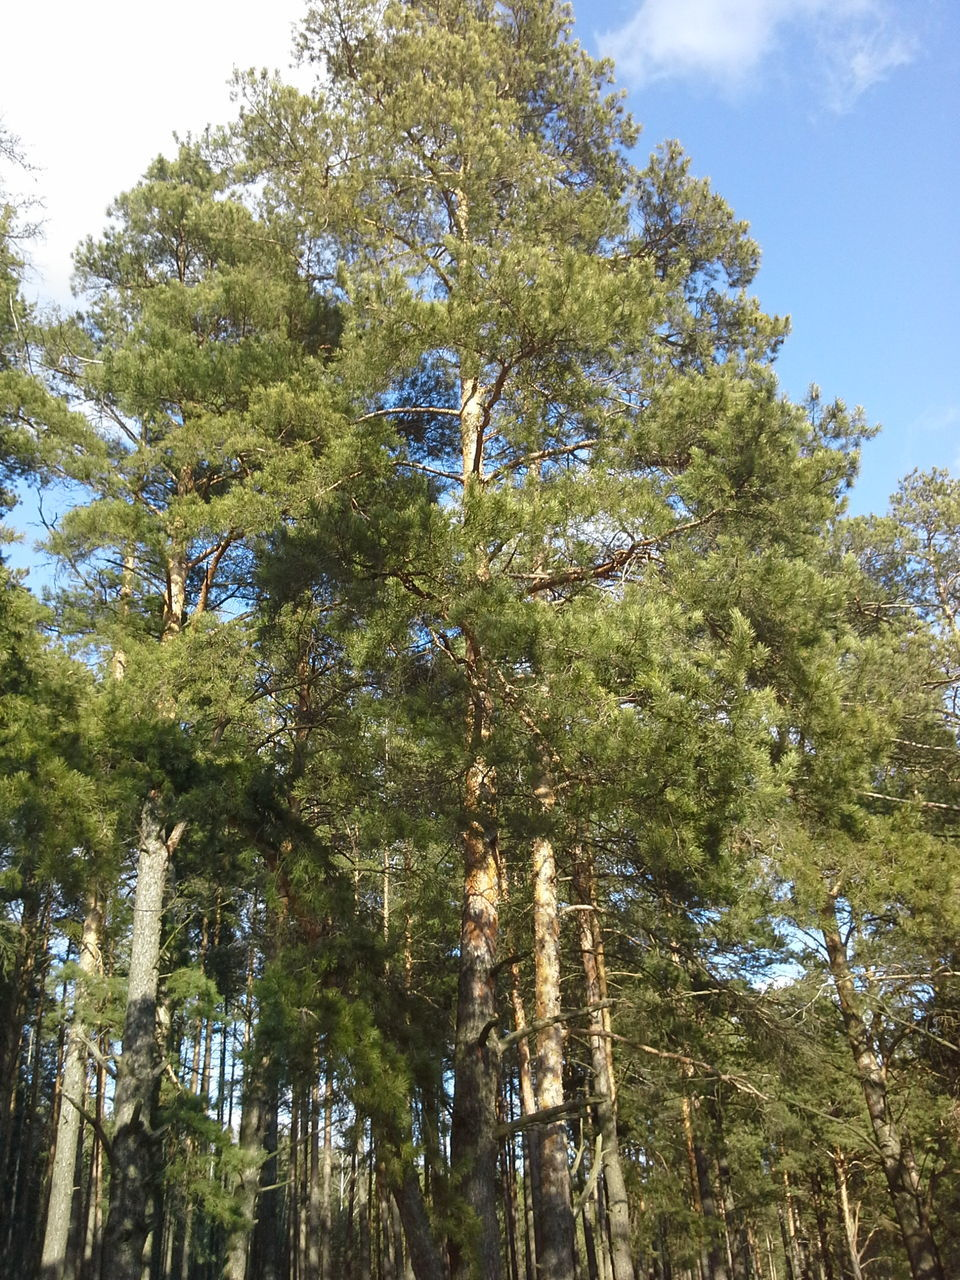 forest, nature, tree, growth, blue sky, no people, outdoors, day, beauty in nature